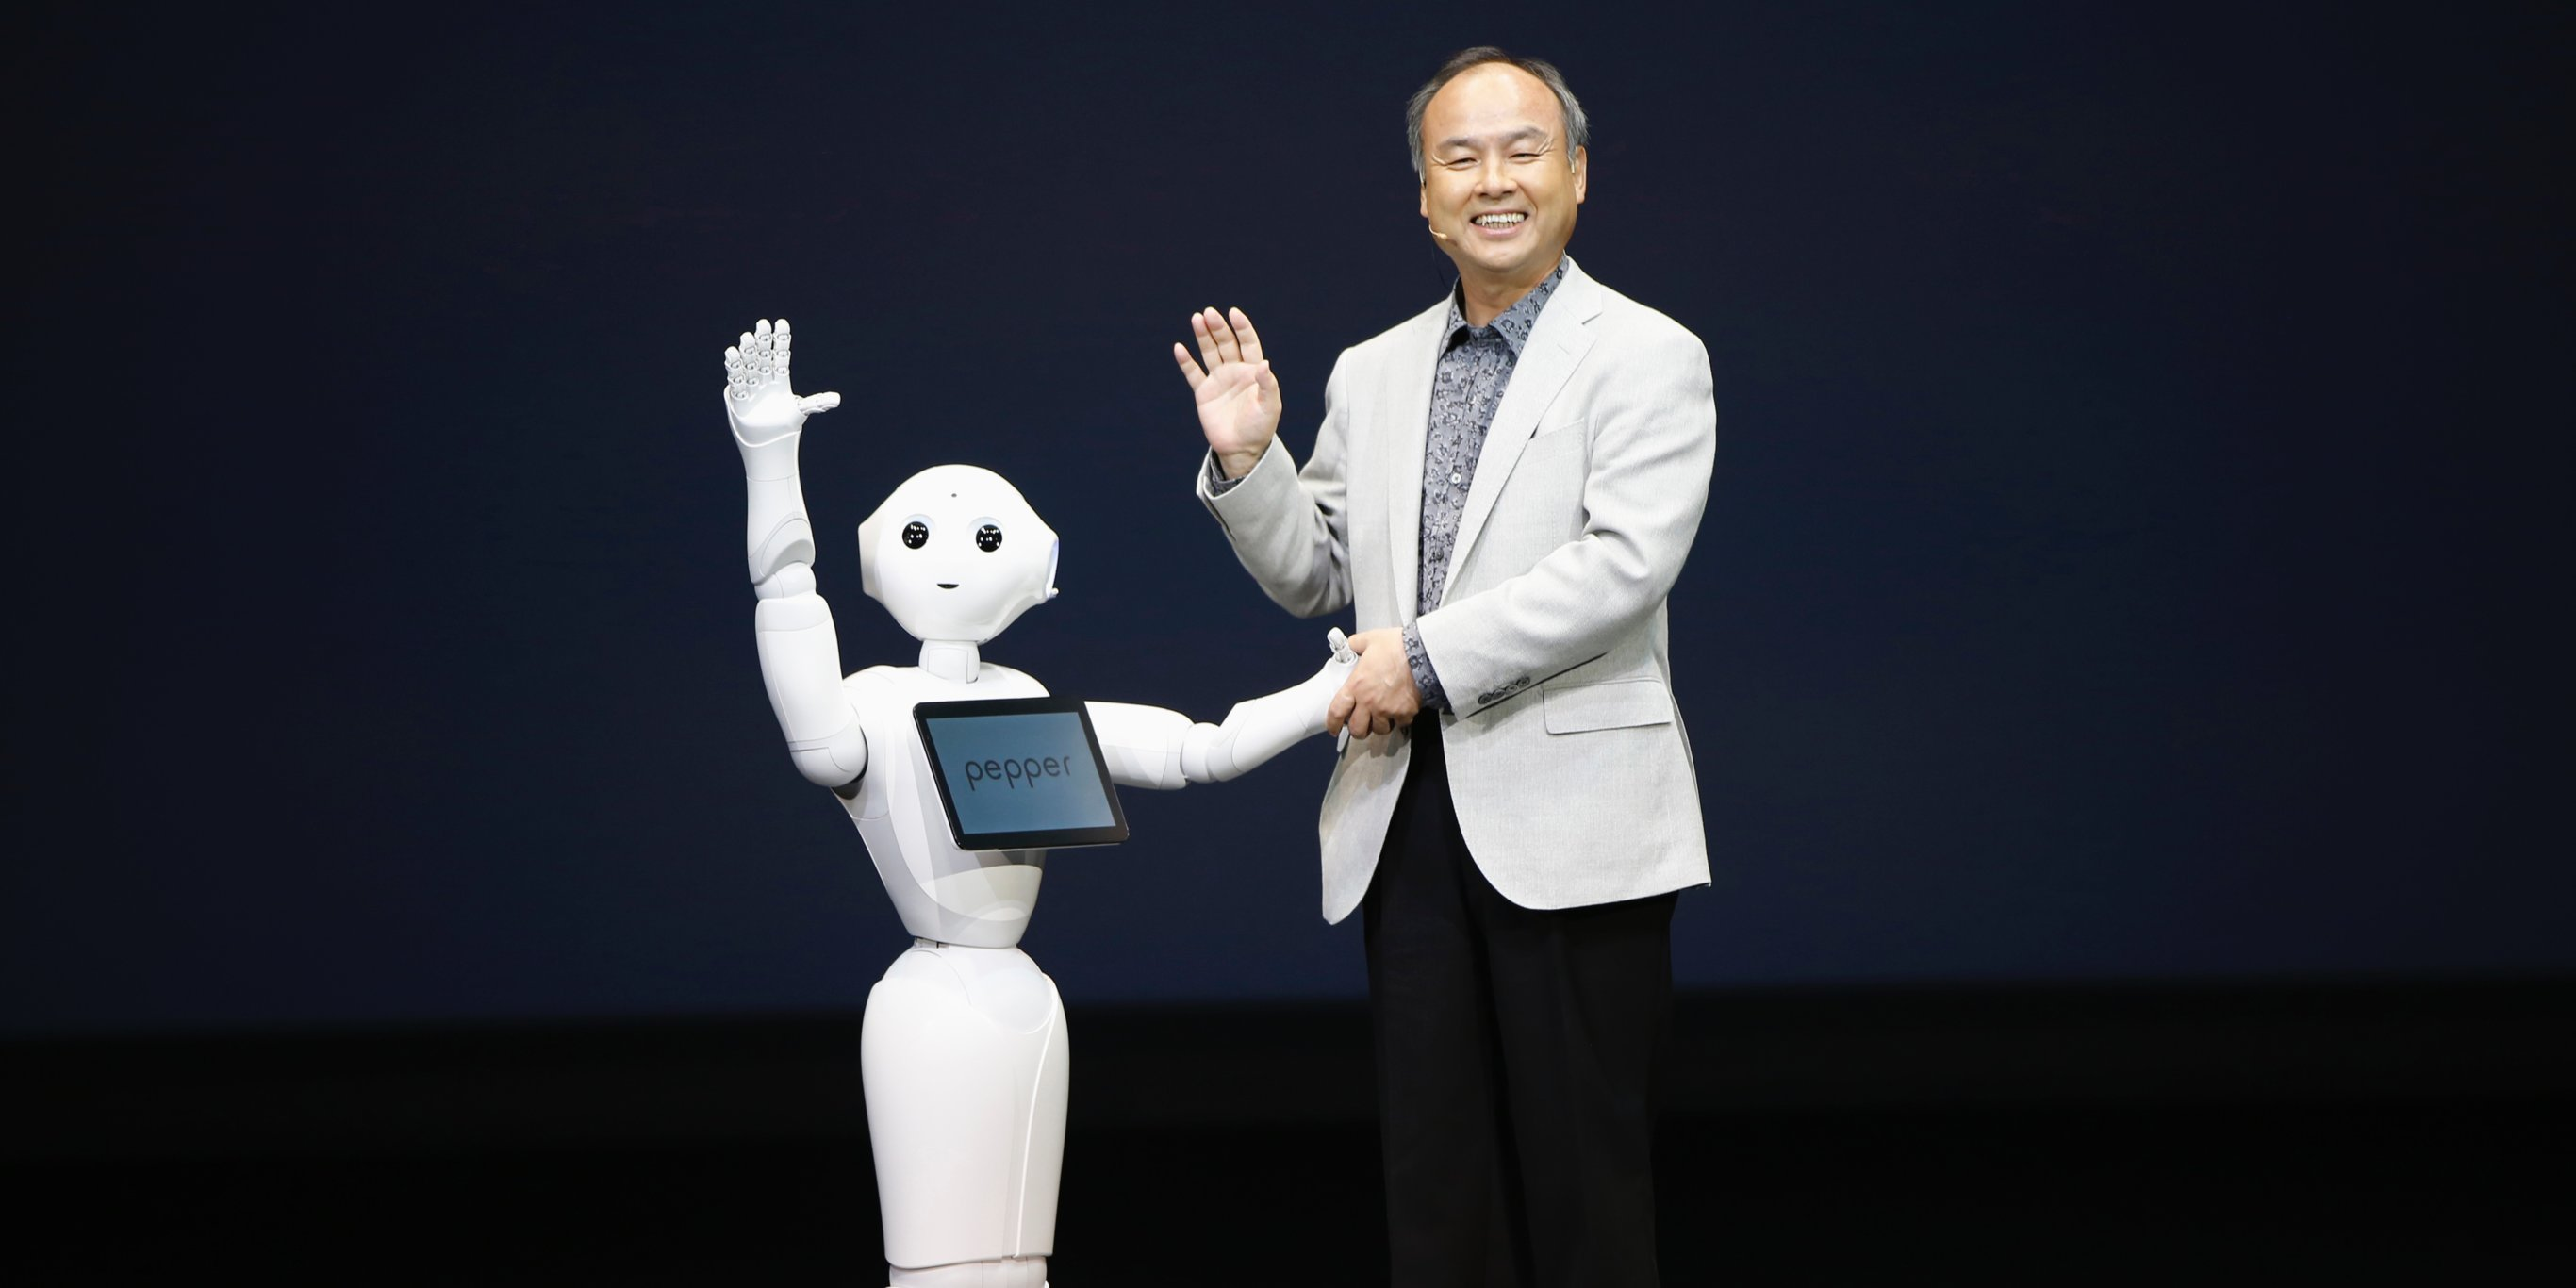 SoftBank, WeWork's biggest backer, is the most powerful investor in tech right now. Here's the running list of all the Japanese giant's major investments.